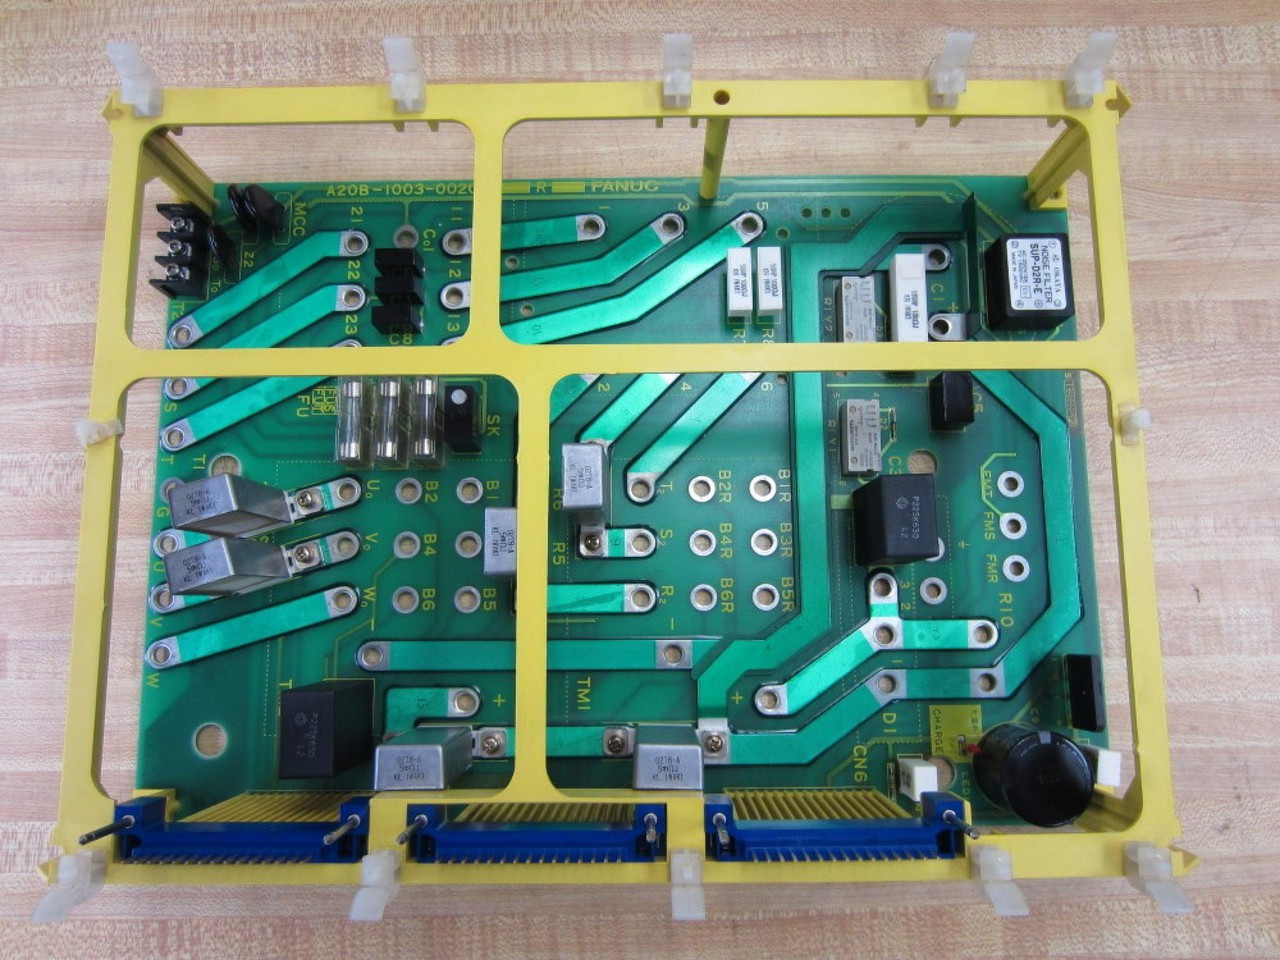 A20B-1003-0020 FANUC AC Spindle Wiring Circuit Board PCB Repair and  Exchange ServiceRedrive